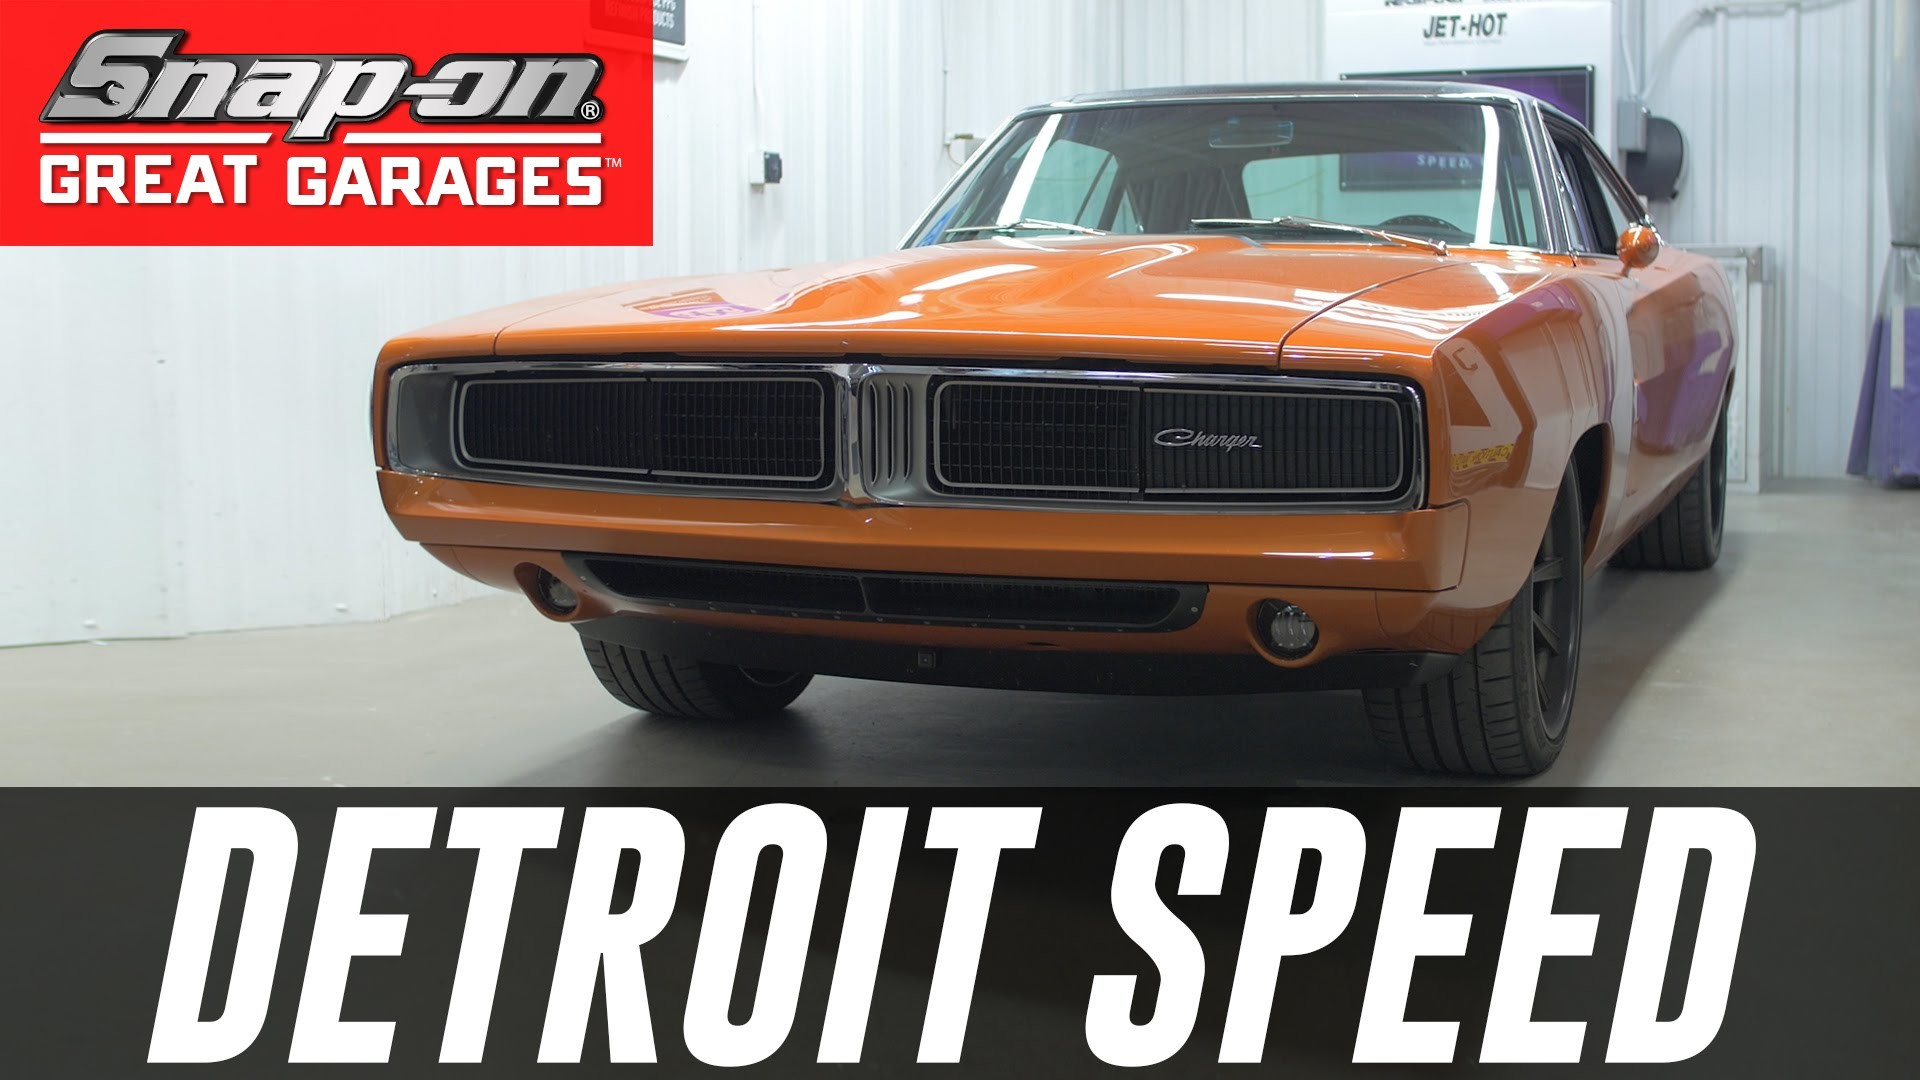 Behind the Garage of Detroit Speed: Snap-on Great Garages™ | Snap-on Tools